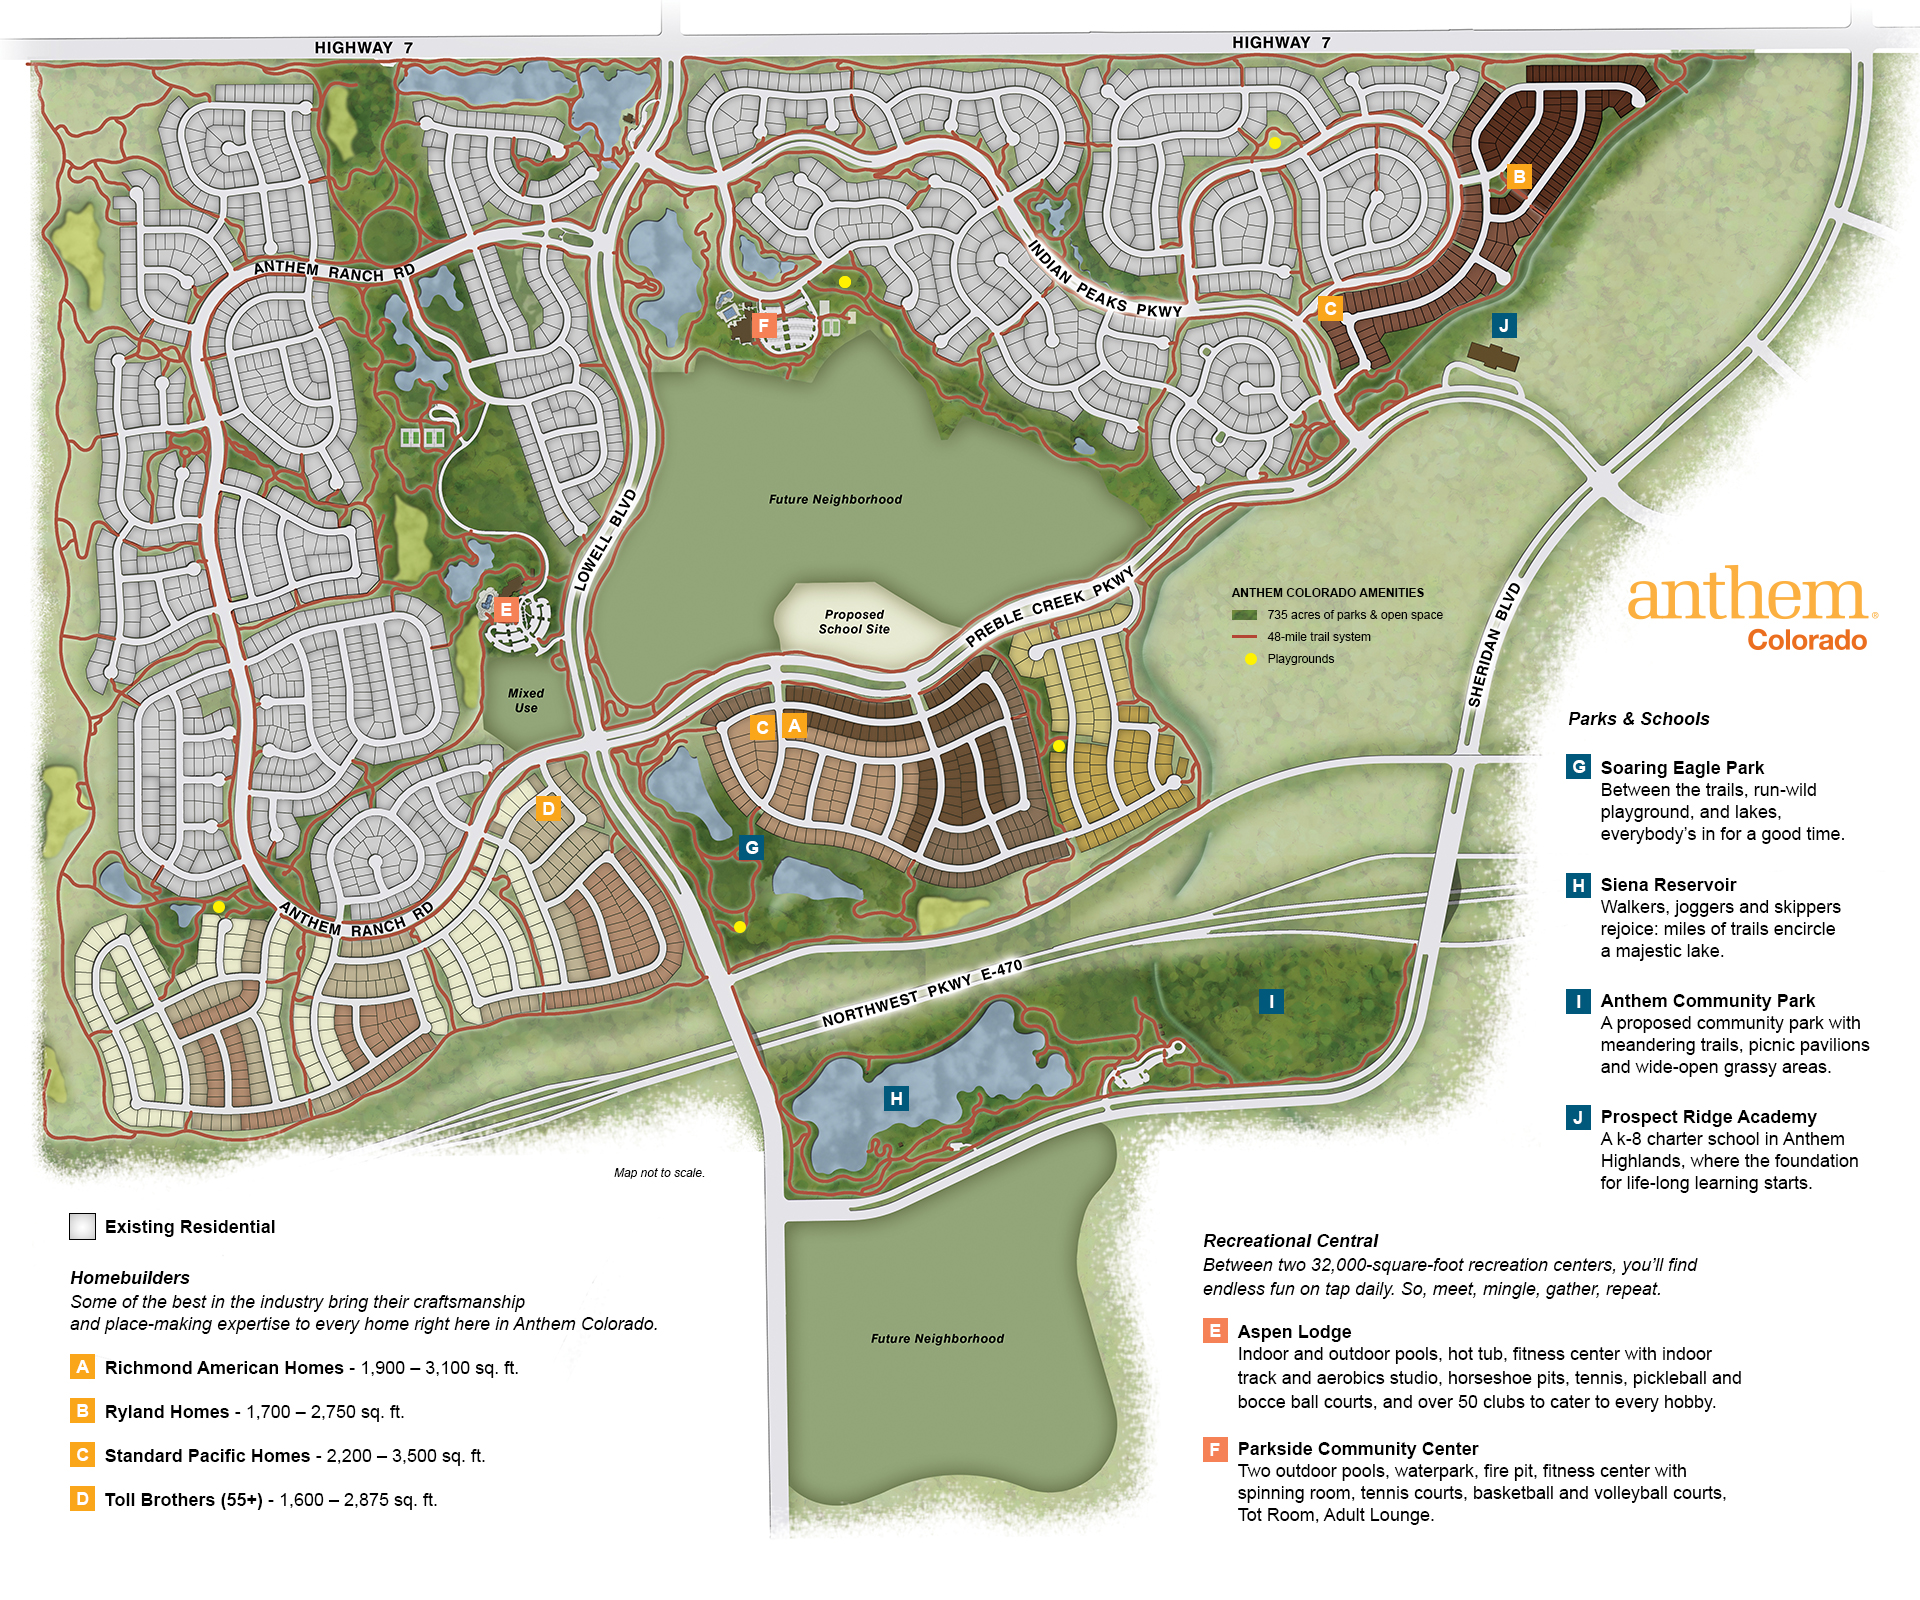 Highlands Ranch Colorado Street Map 0836410: Best Houses & Real Estate For Sale In Anthem, Broomfield CO